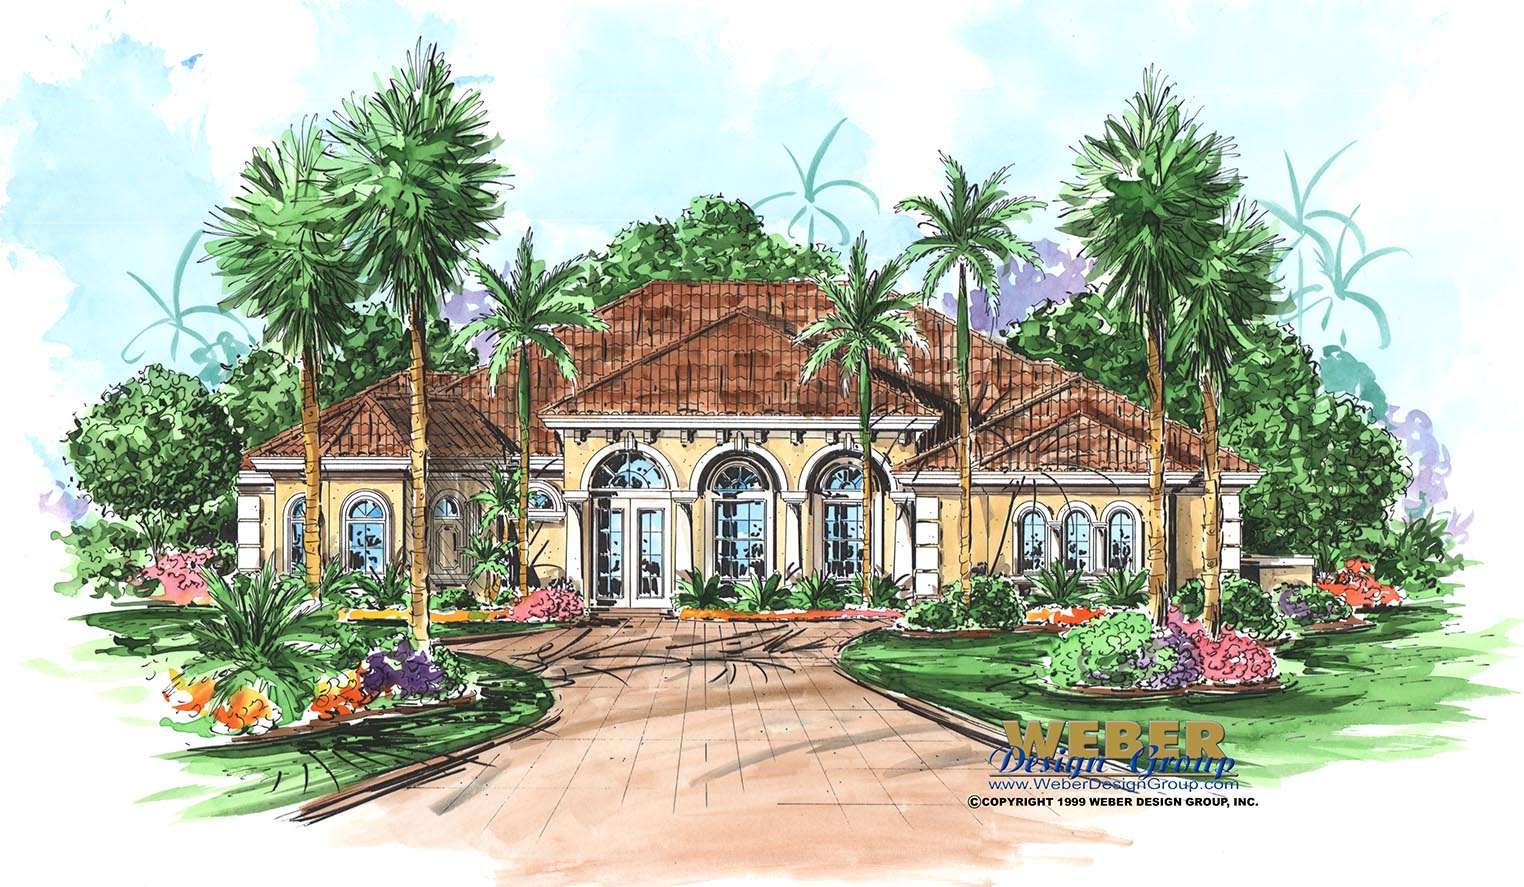 Tobago cay house plan caribbean house plan weber for Caribbean home plans